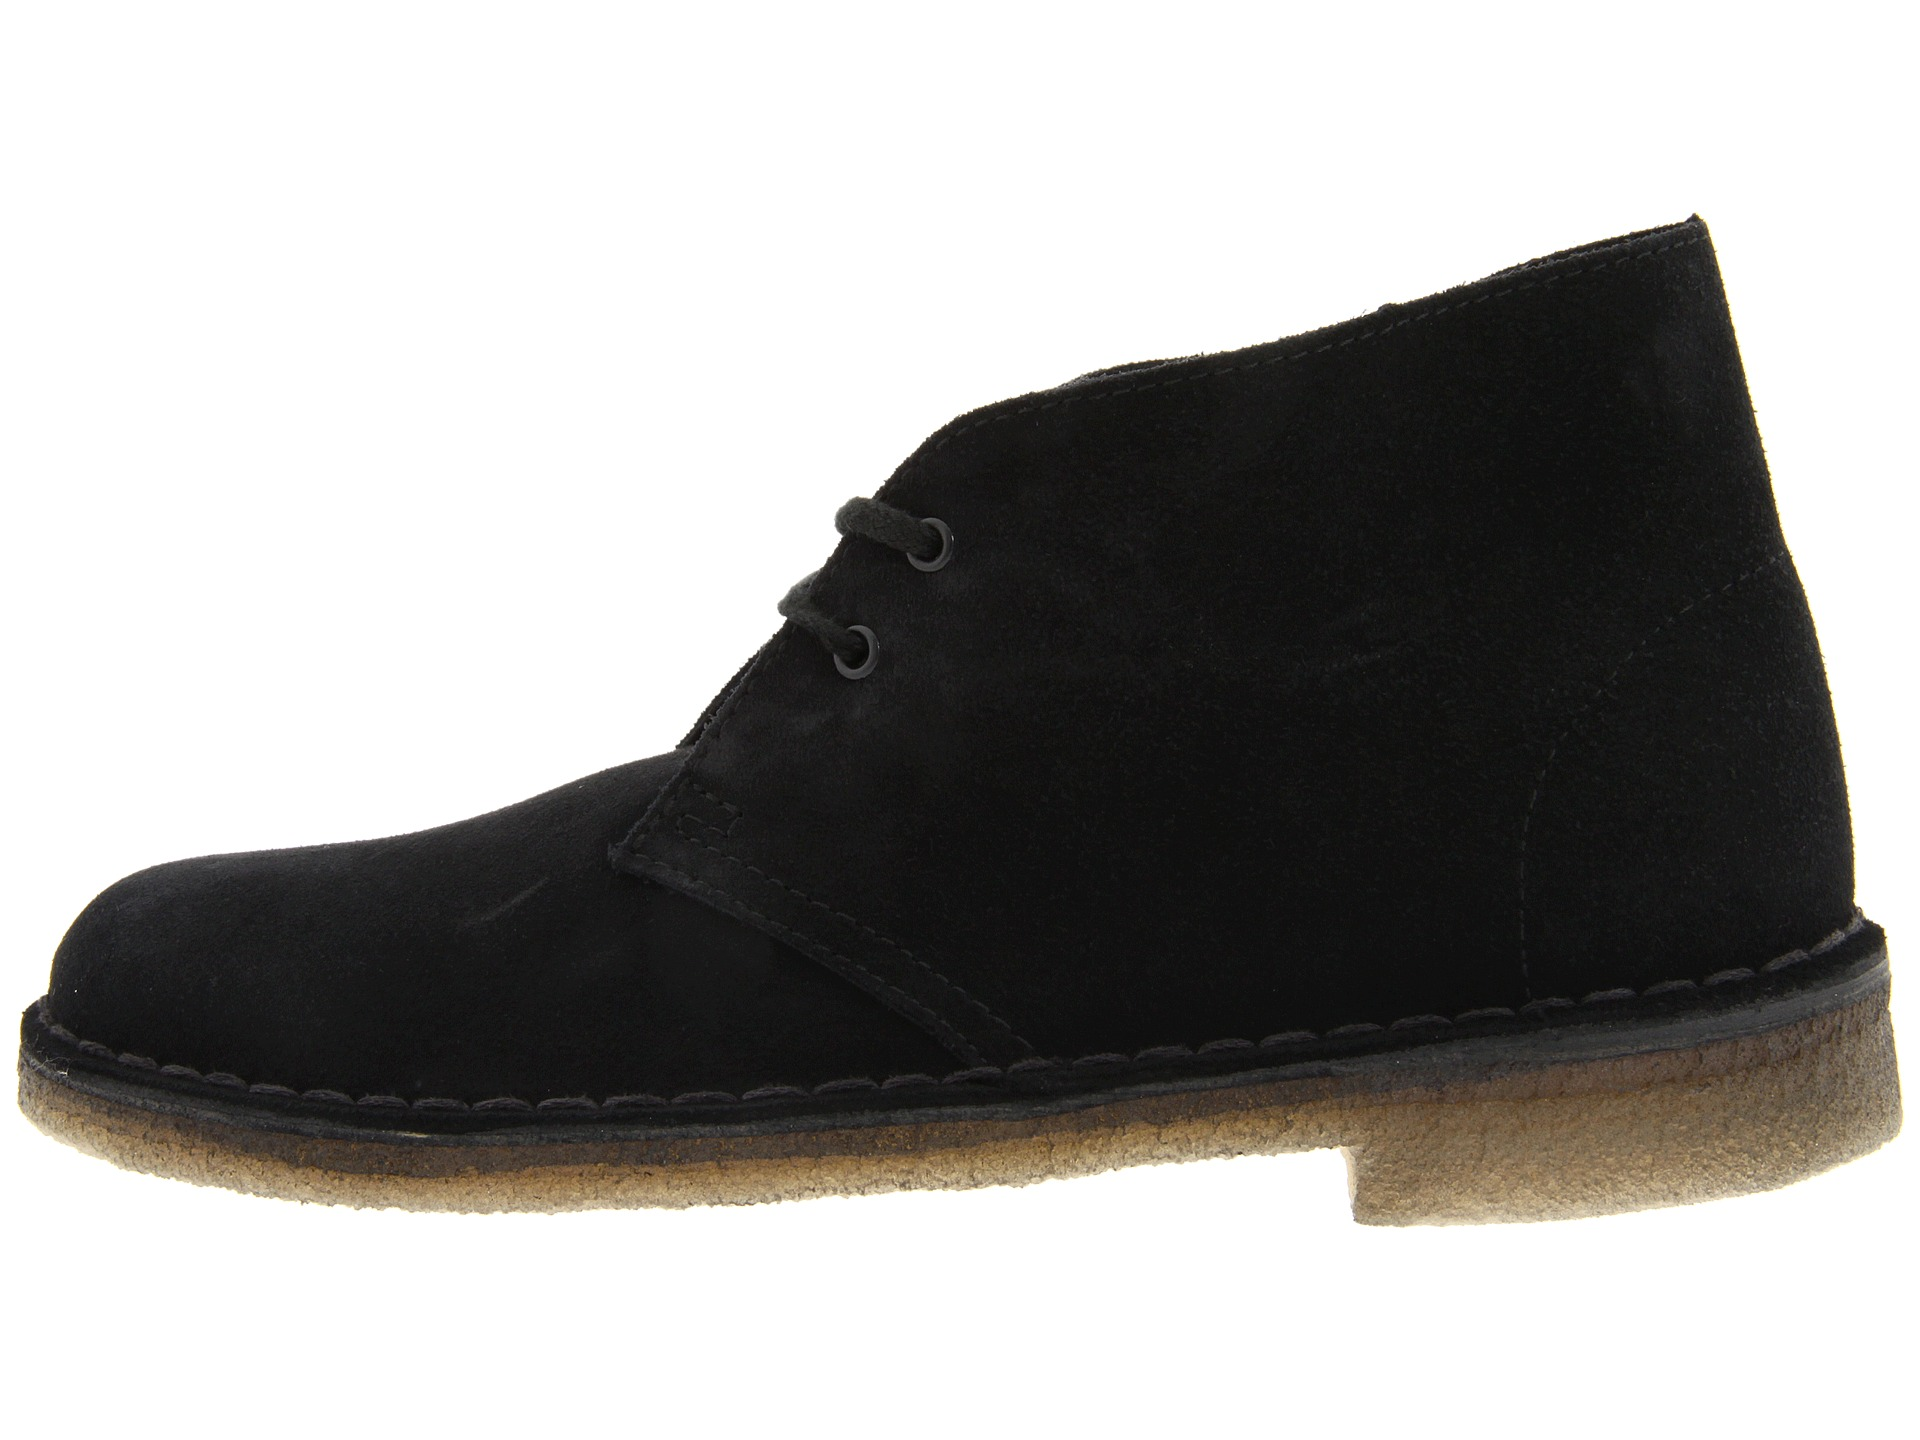 204e84ab93219a Zappos clarks womens shoes » Girls clothing stores